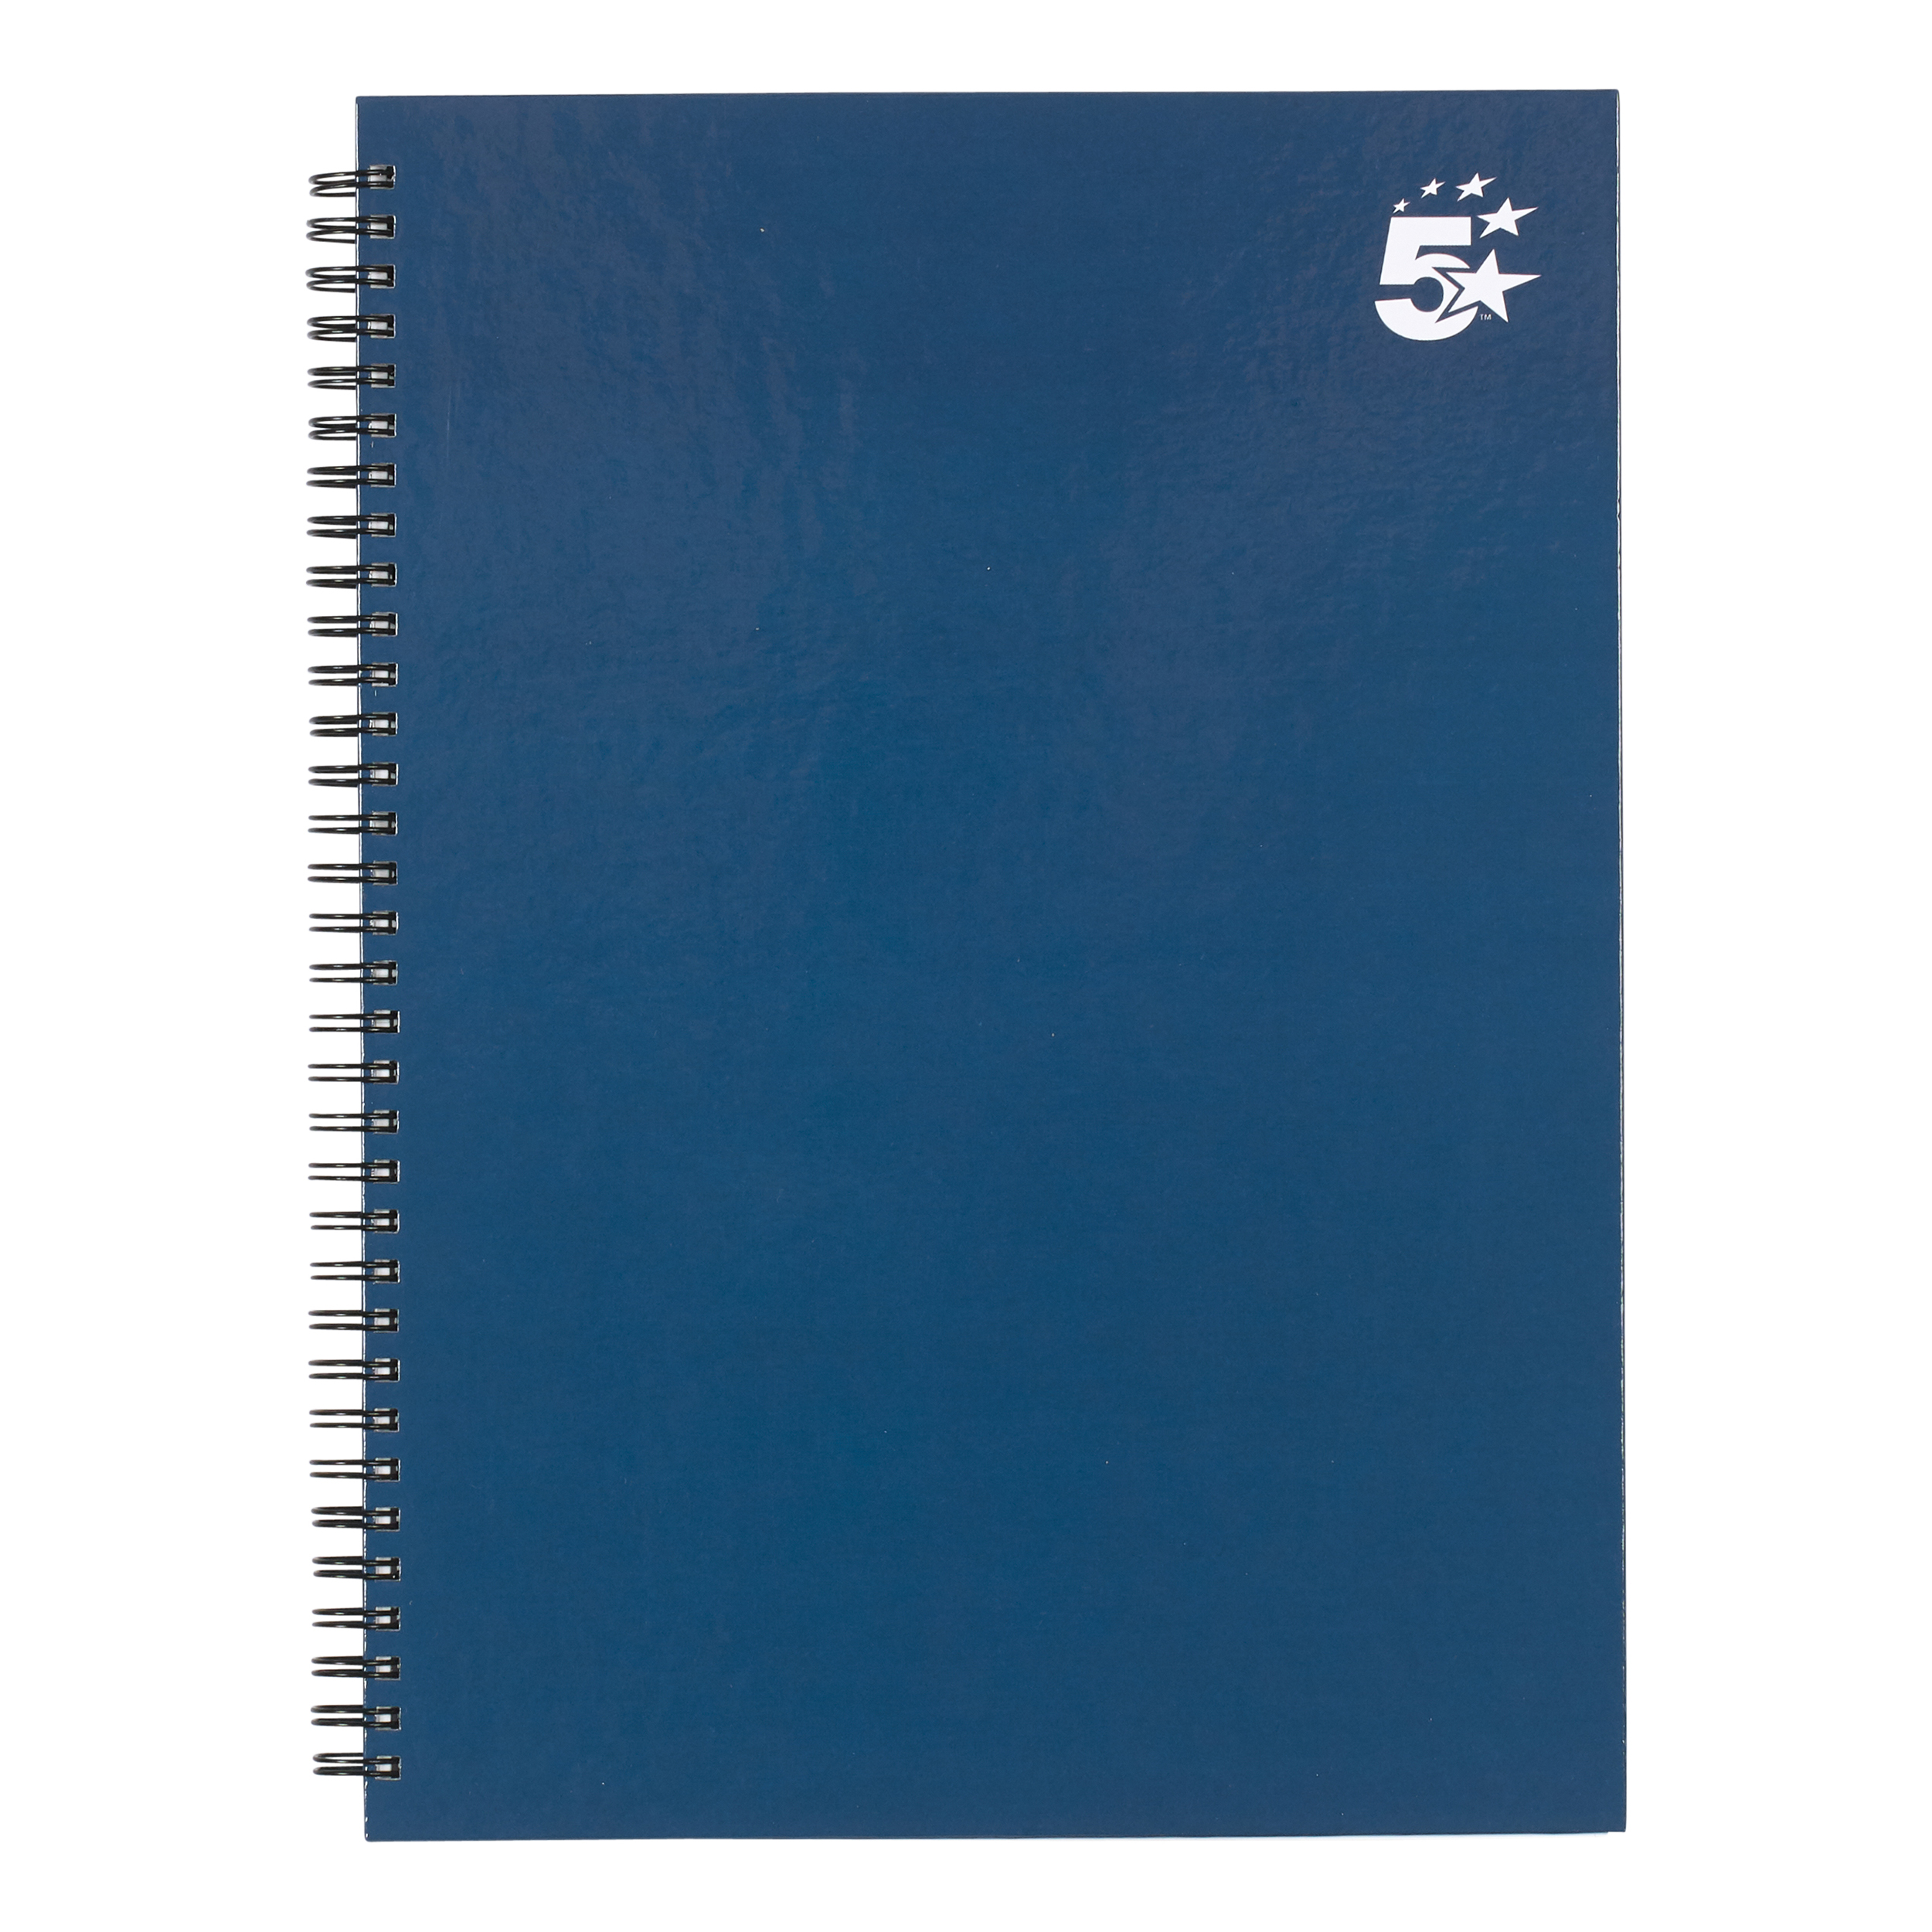 Paper pads or notebooks 5 Star Office Twinbound Hardback A4 140Pg Indigo Ref 943482 [Pack 5]